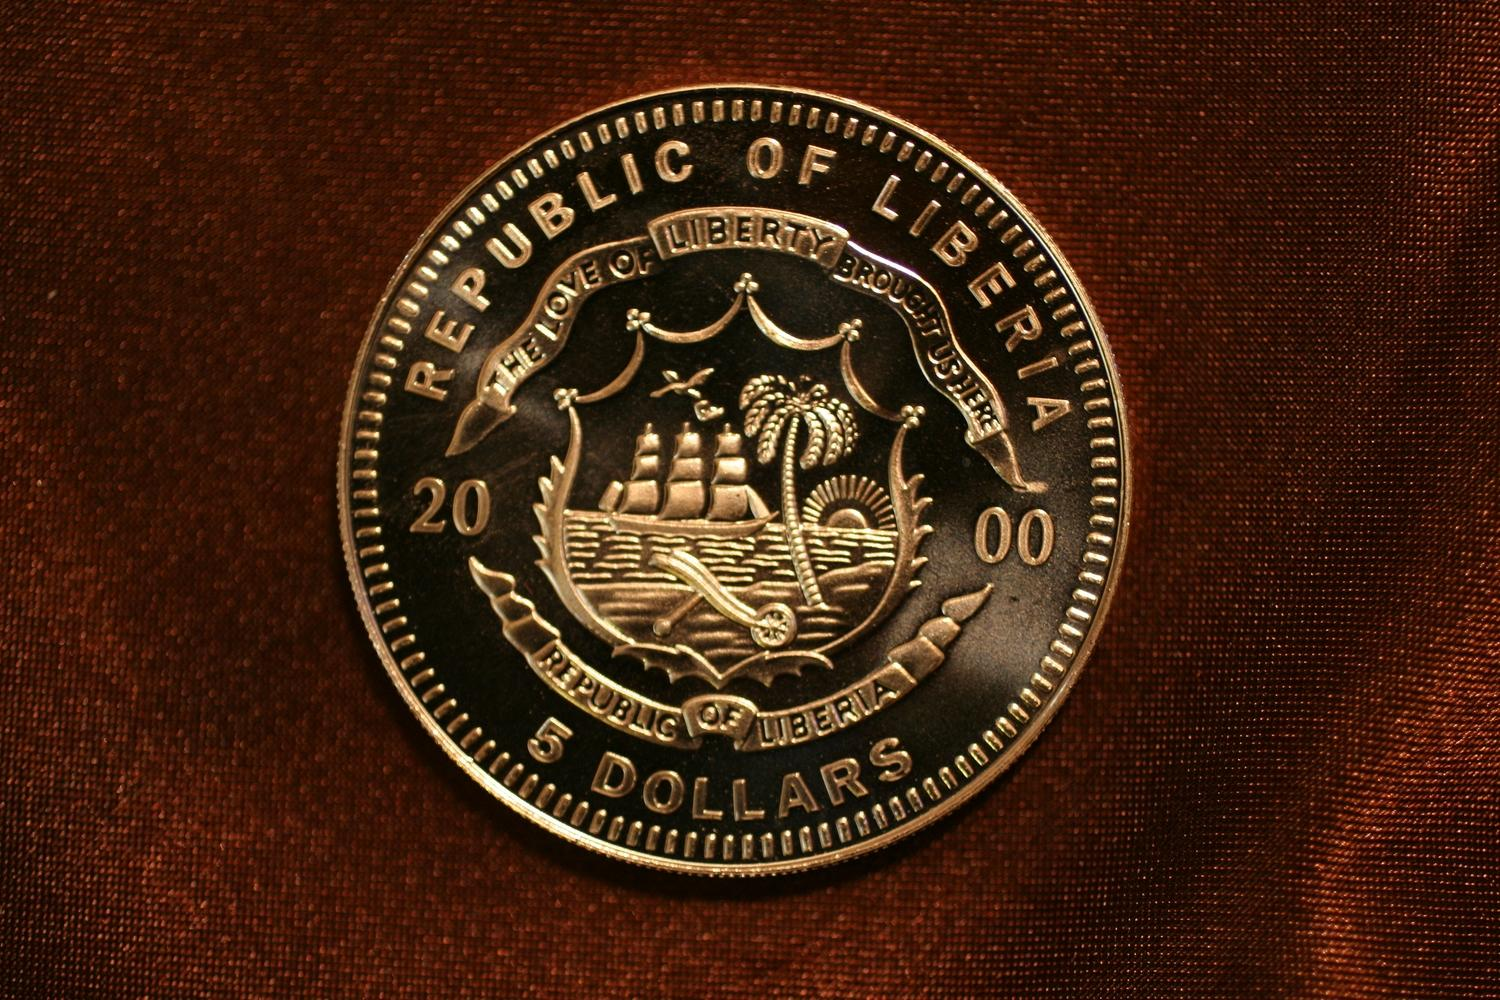 Image 2 2000 Orville Wilbur Wright Republic Of Liberia 5 Dollar Coin